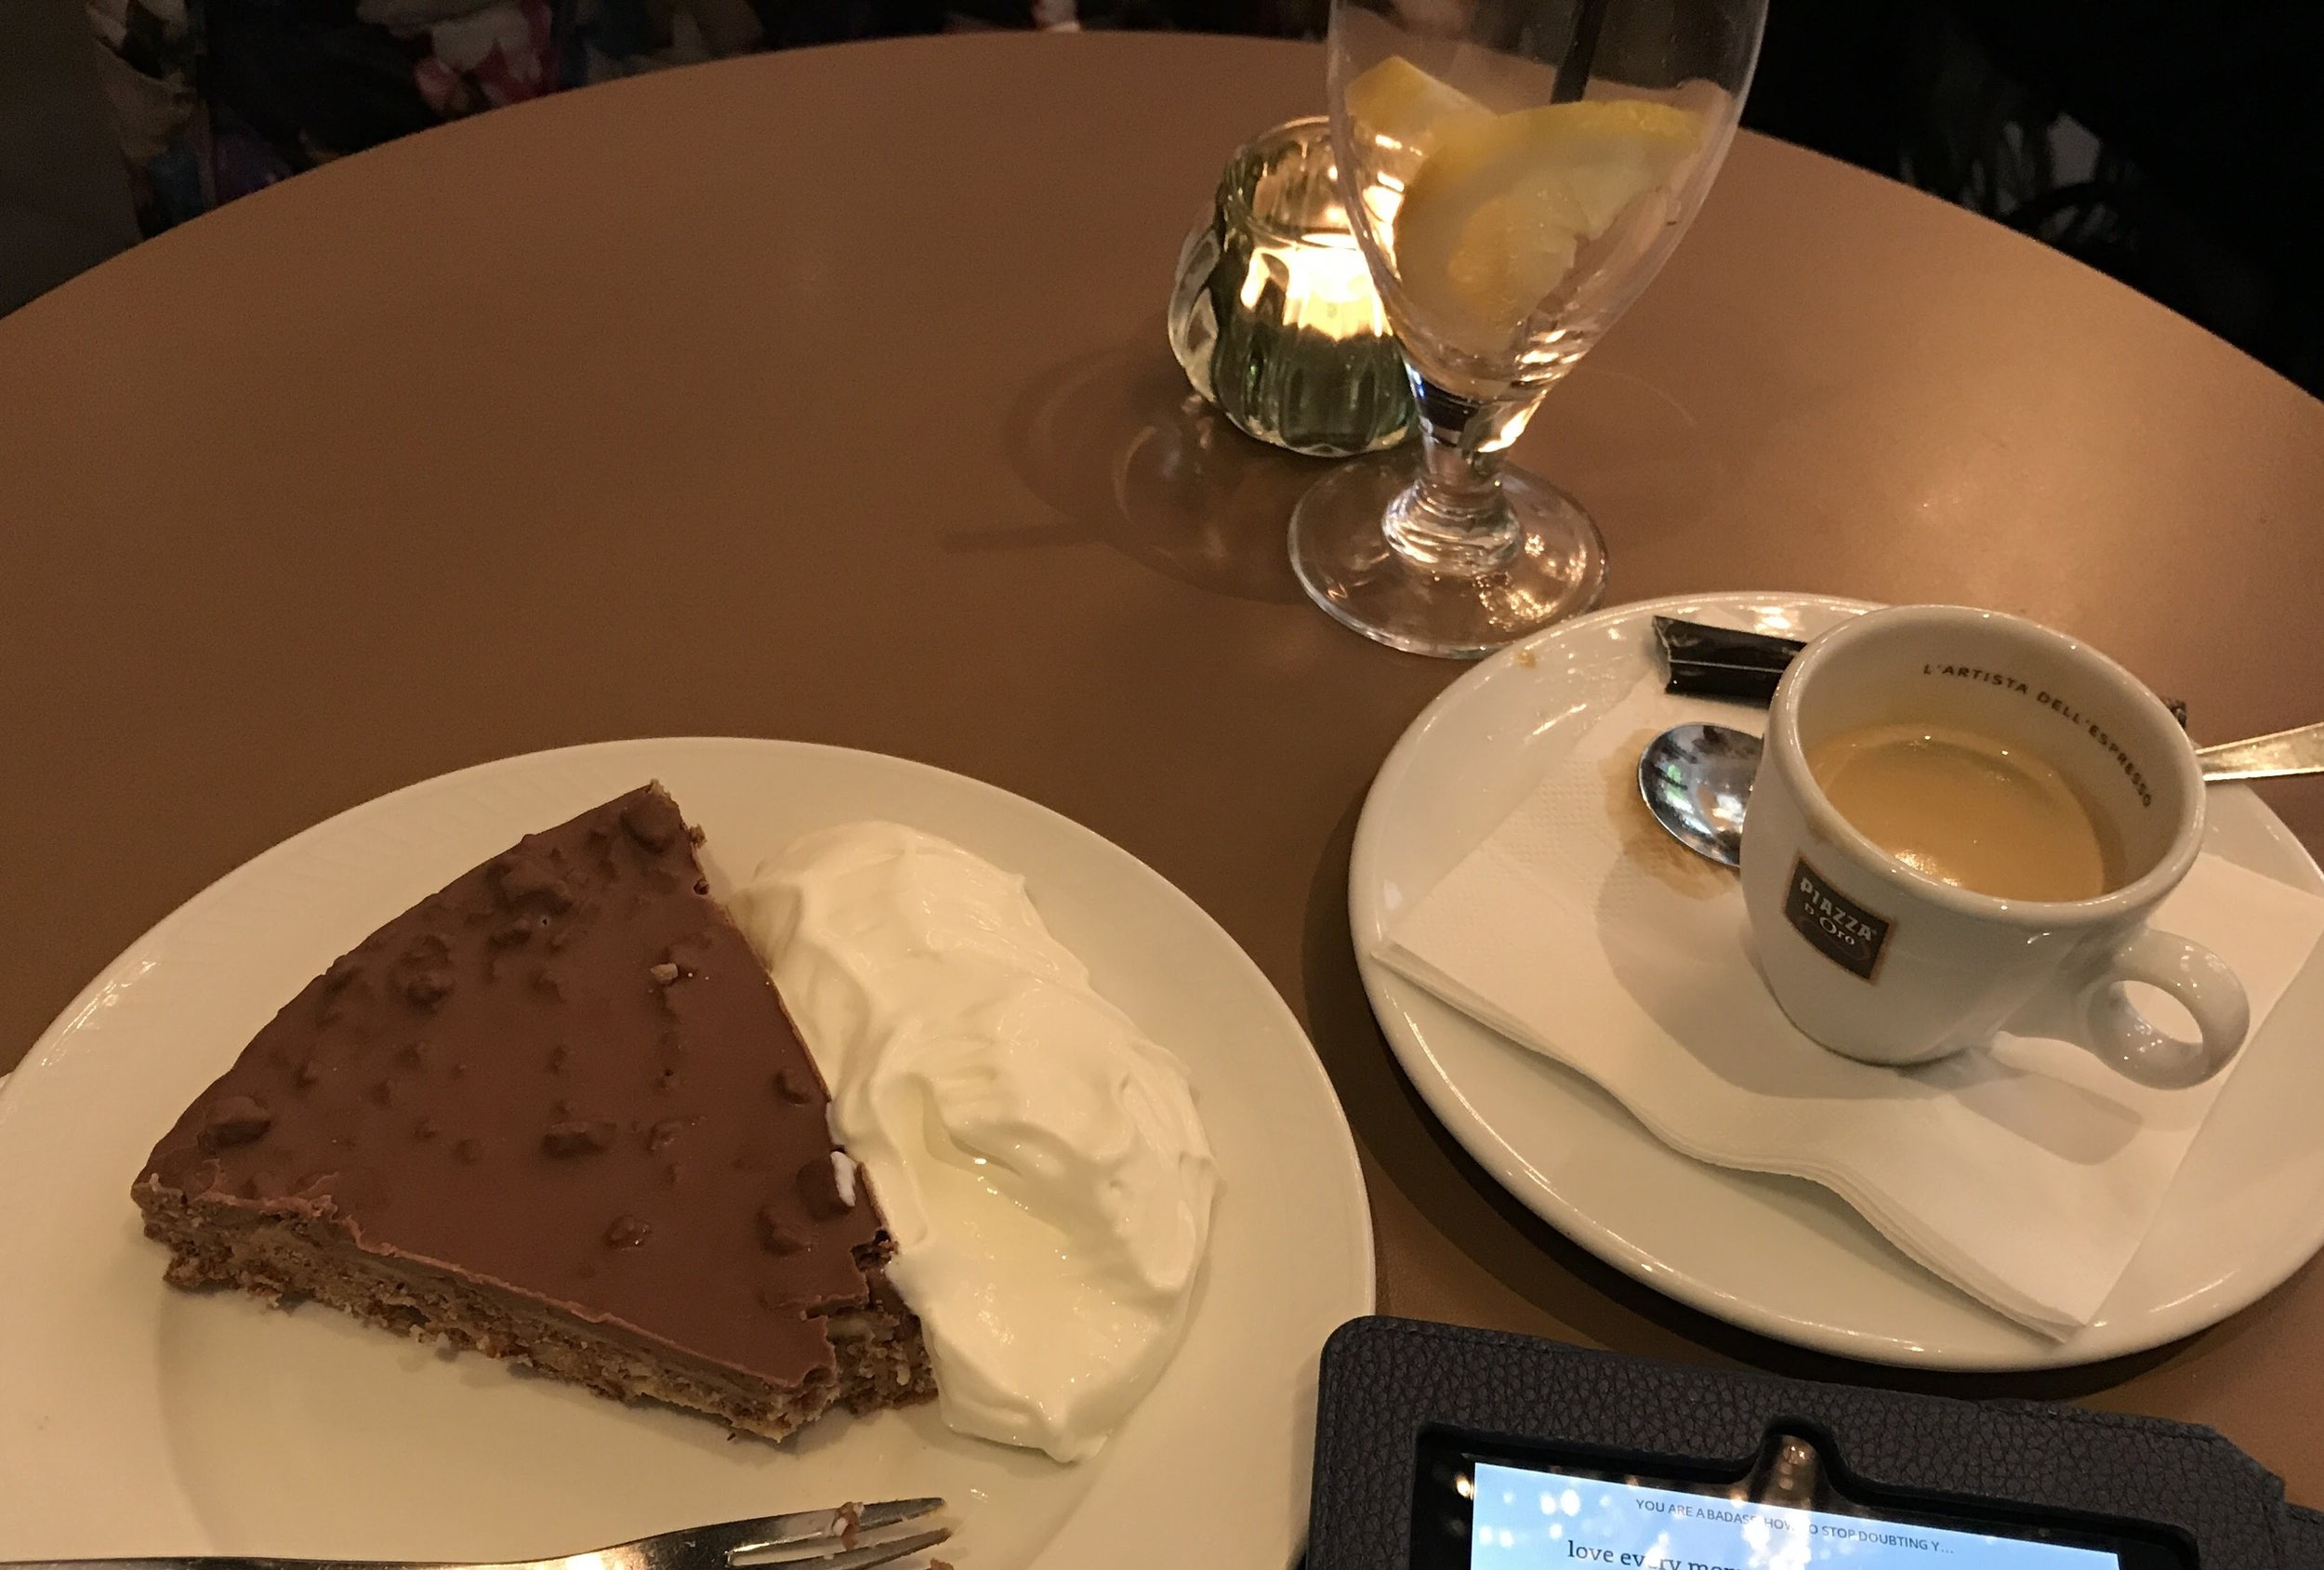 Espresso, my Kindle, and a mega slice of  Daim -bar flavored cake with cream. That cake was delicious!